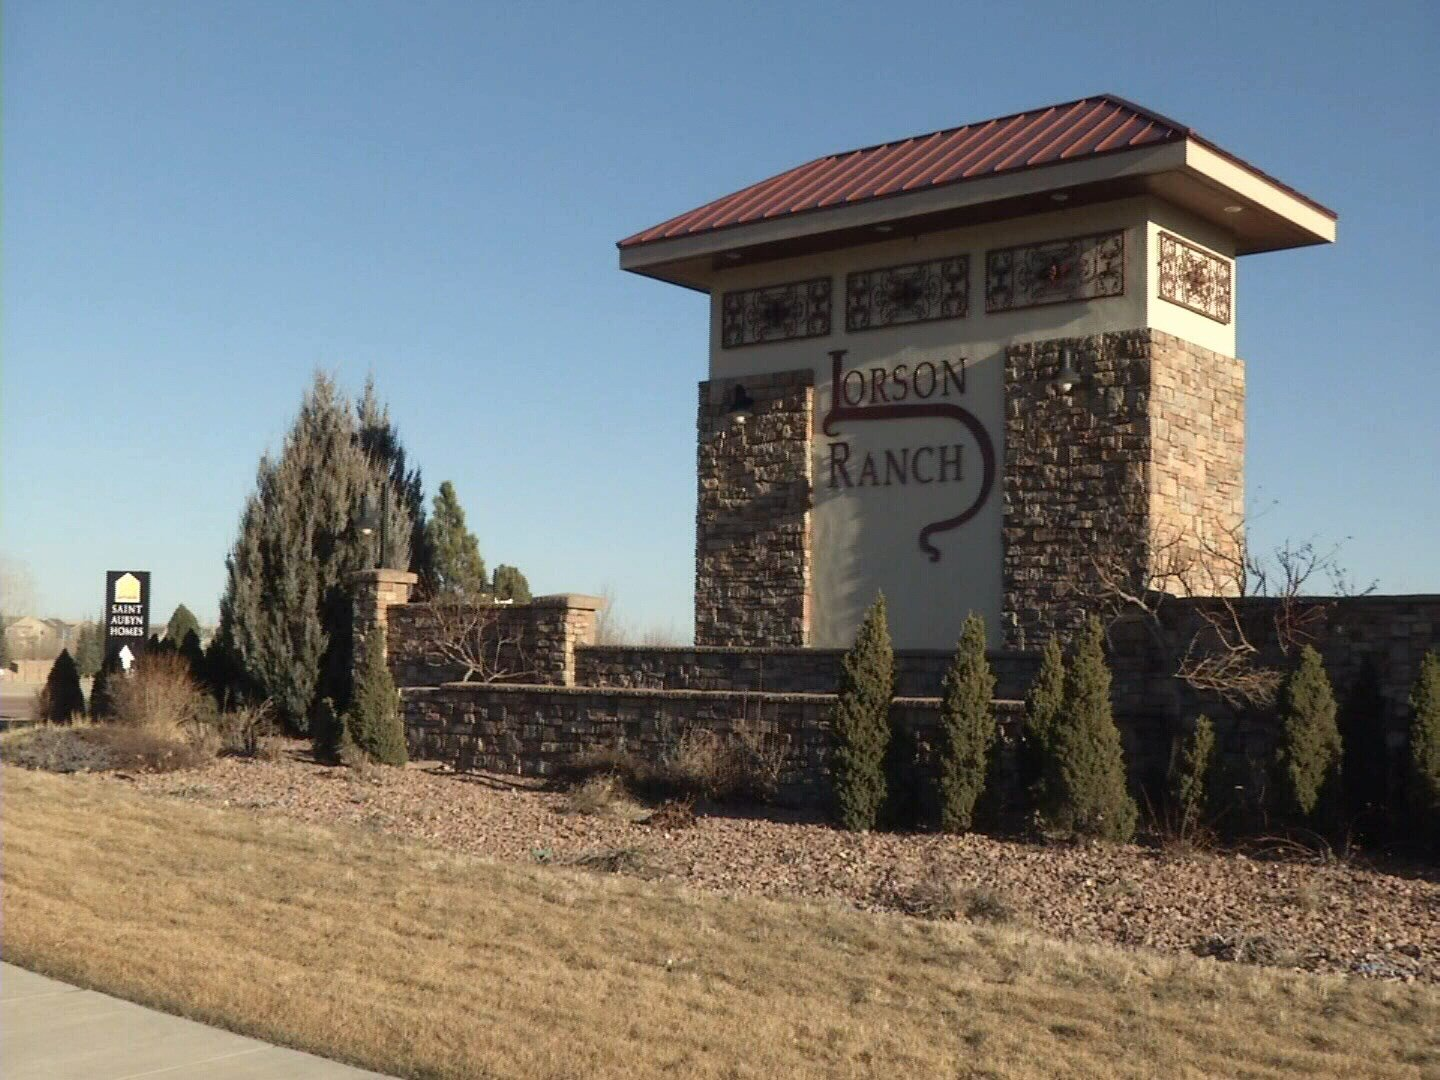 A new Pre-K through 8 school is set to be built in the Lorson Ranch neighborhood for Widefield School District 3. (KOAA)